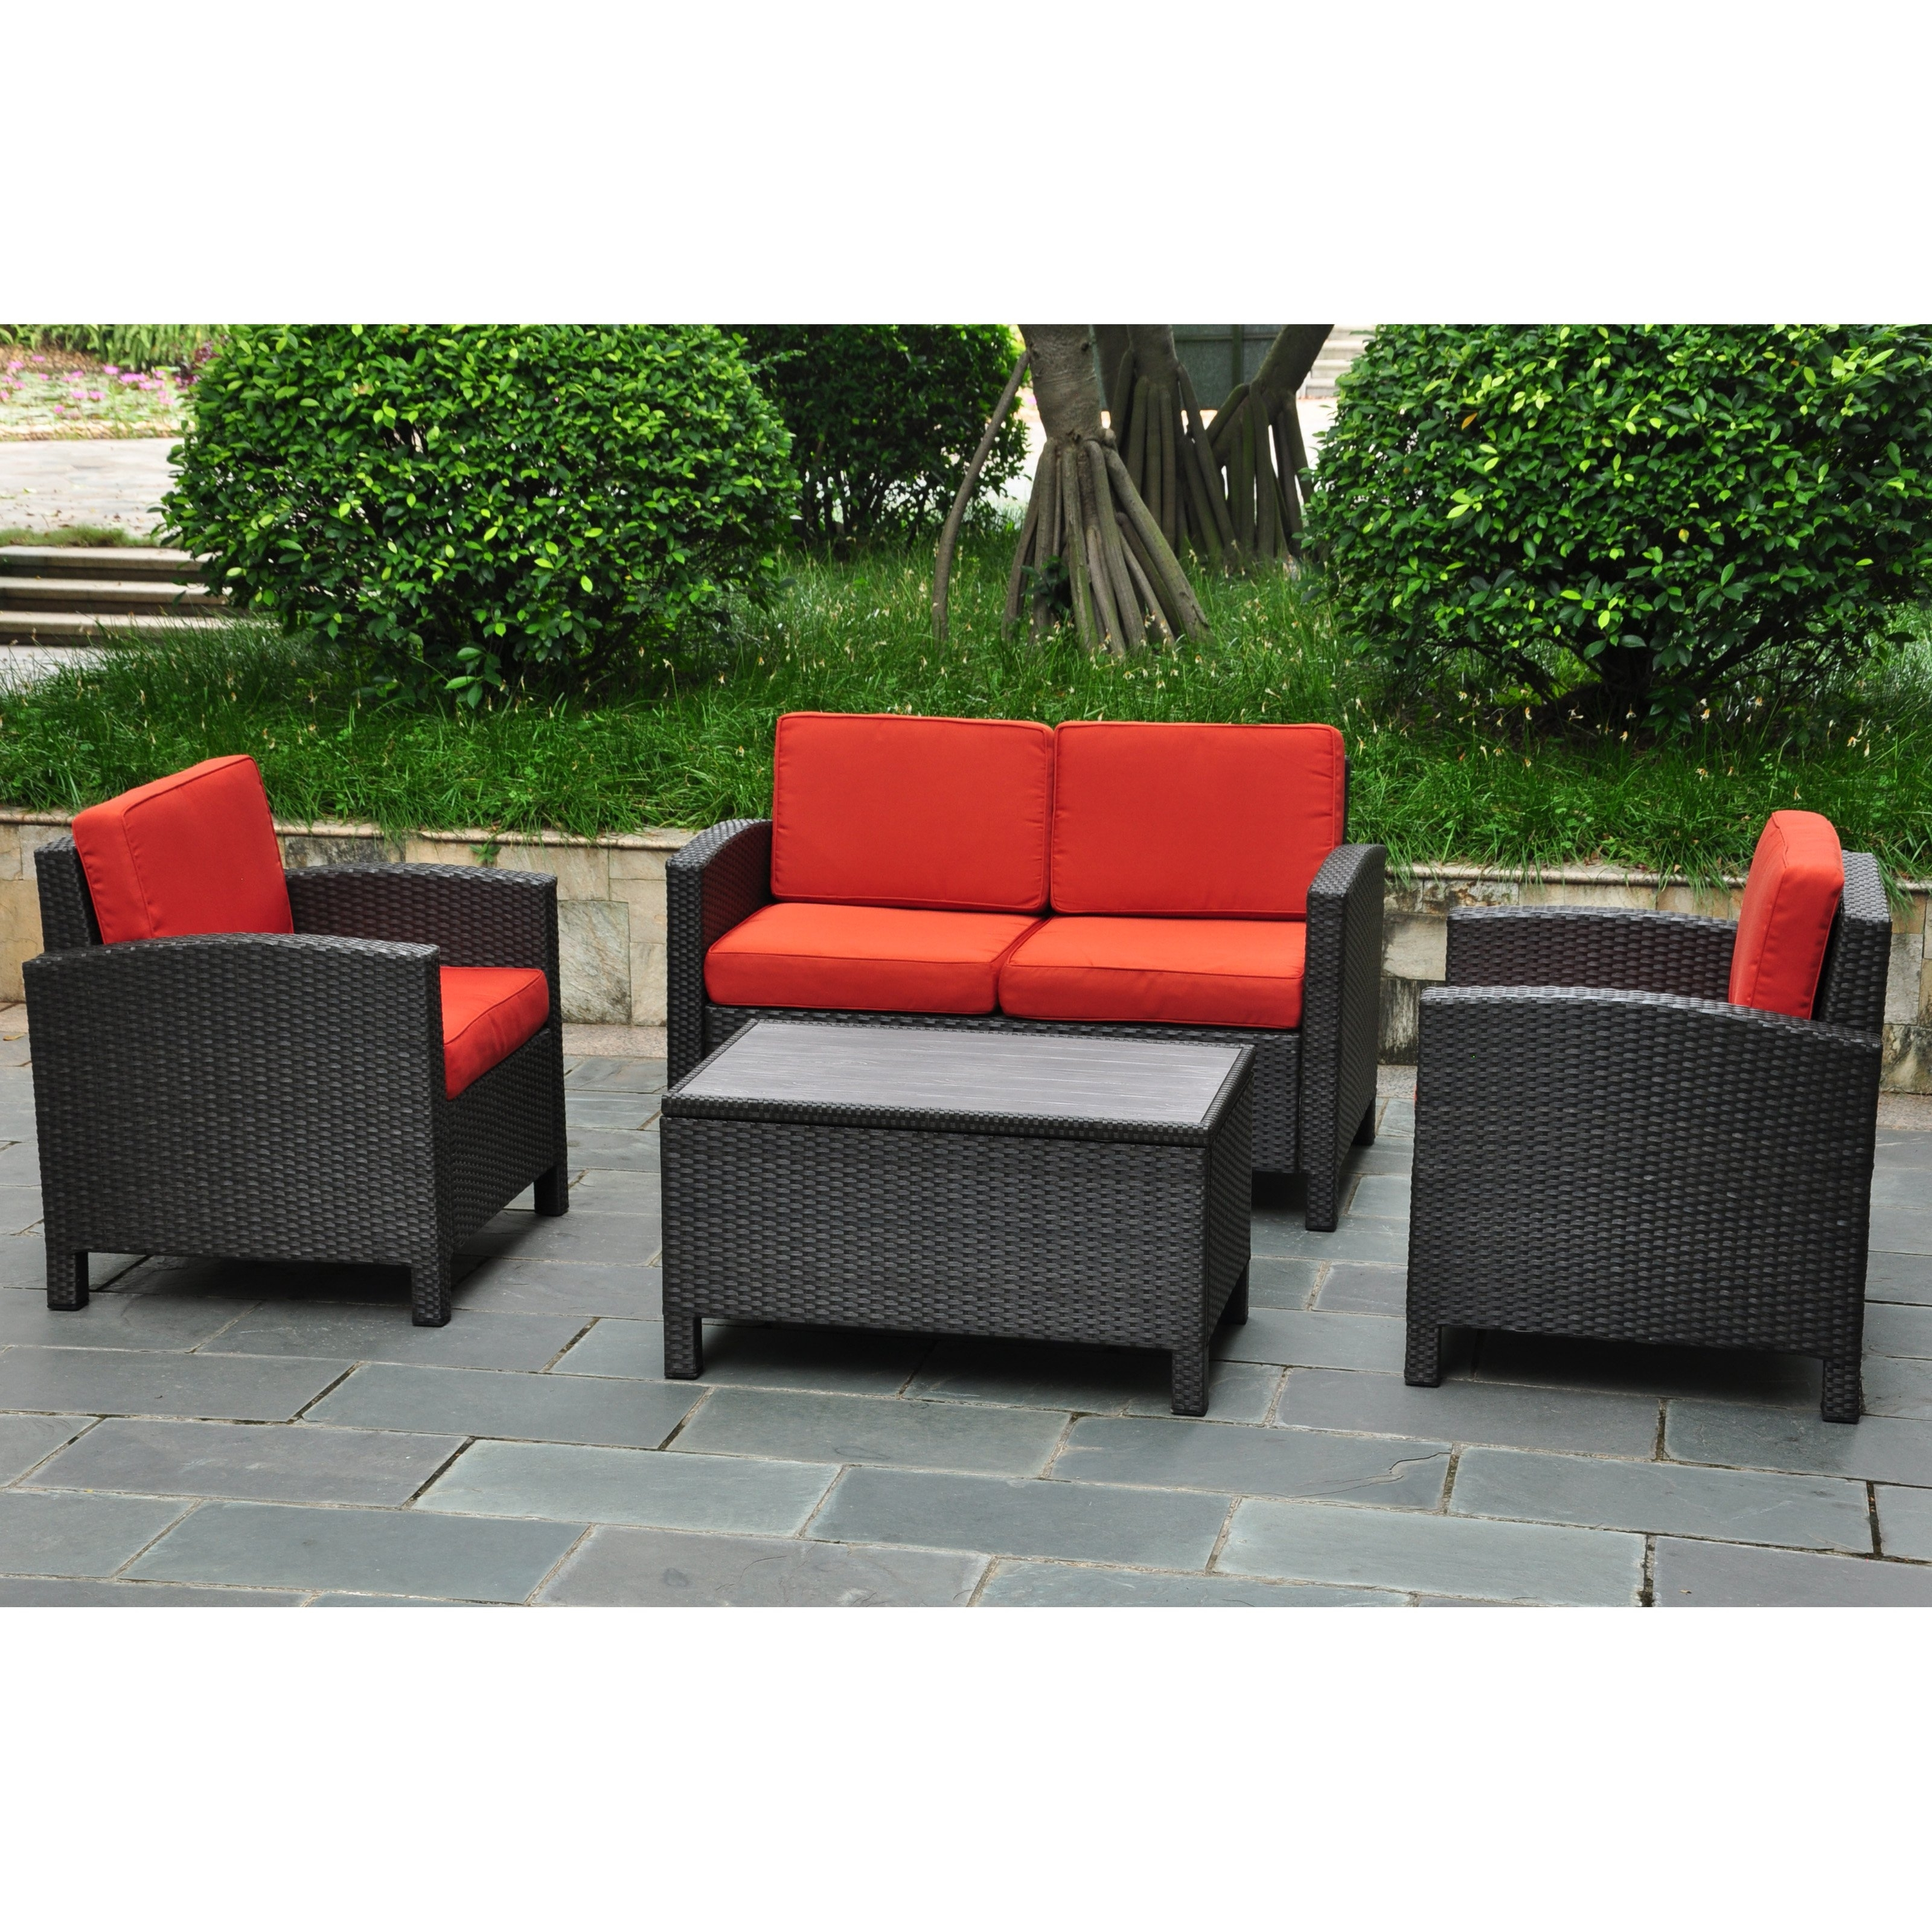 International Caravan Barcelona Resin Wicker Outdoor Patio Set With throughout 2017 Patio Conversation Sets With Storage